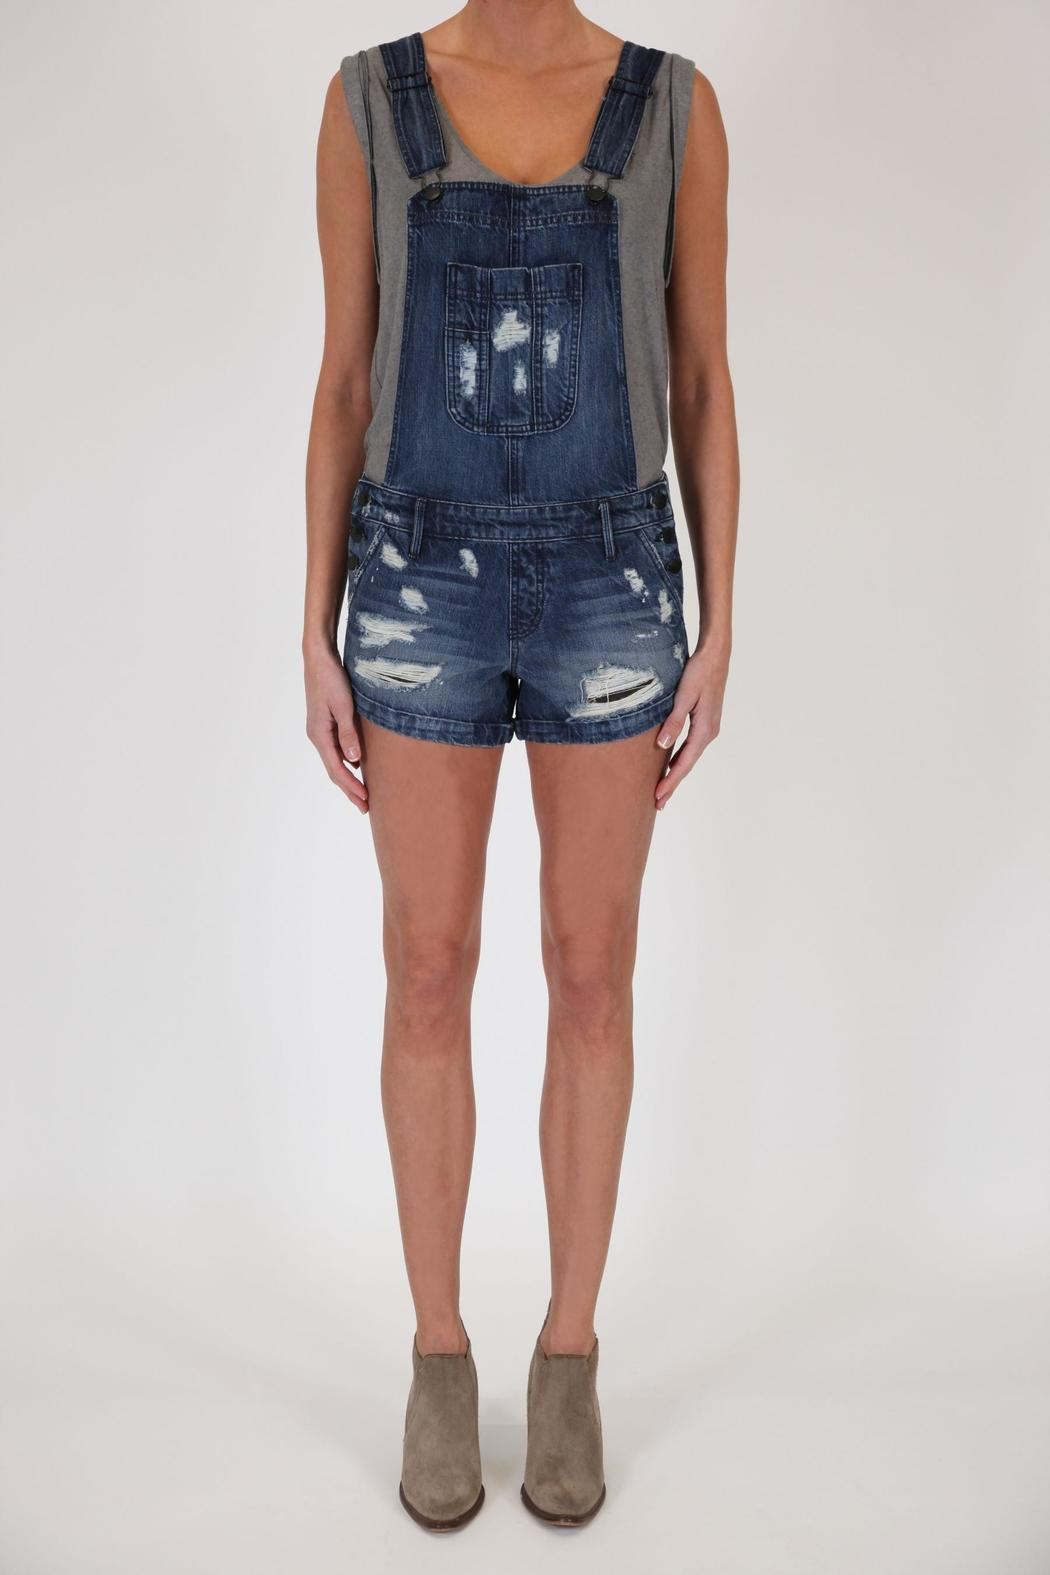 Overalls Are Making A Comeback As The Latest Fashion Trend: Black Orchid Denim Denim Short Overalls From Florida By